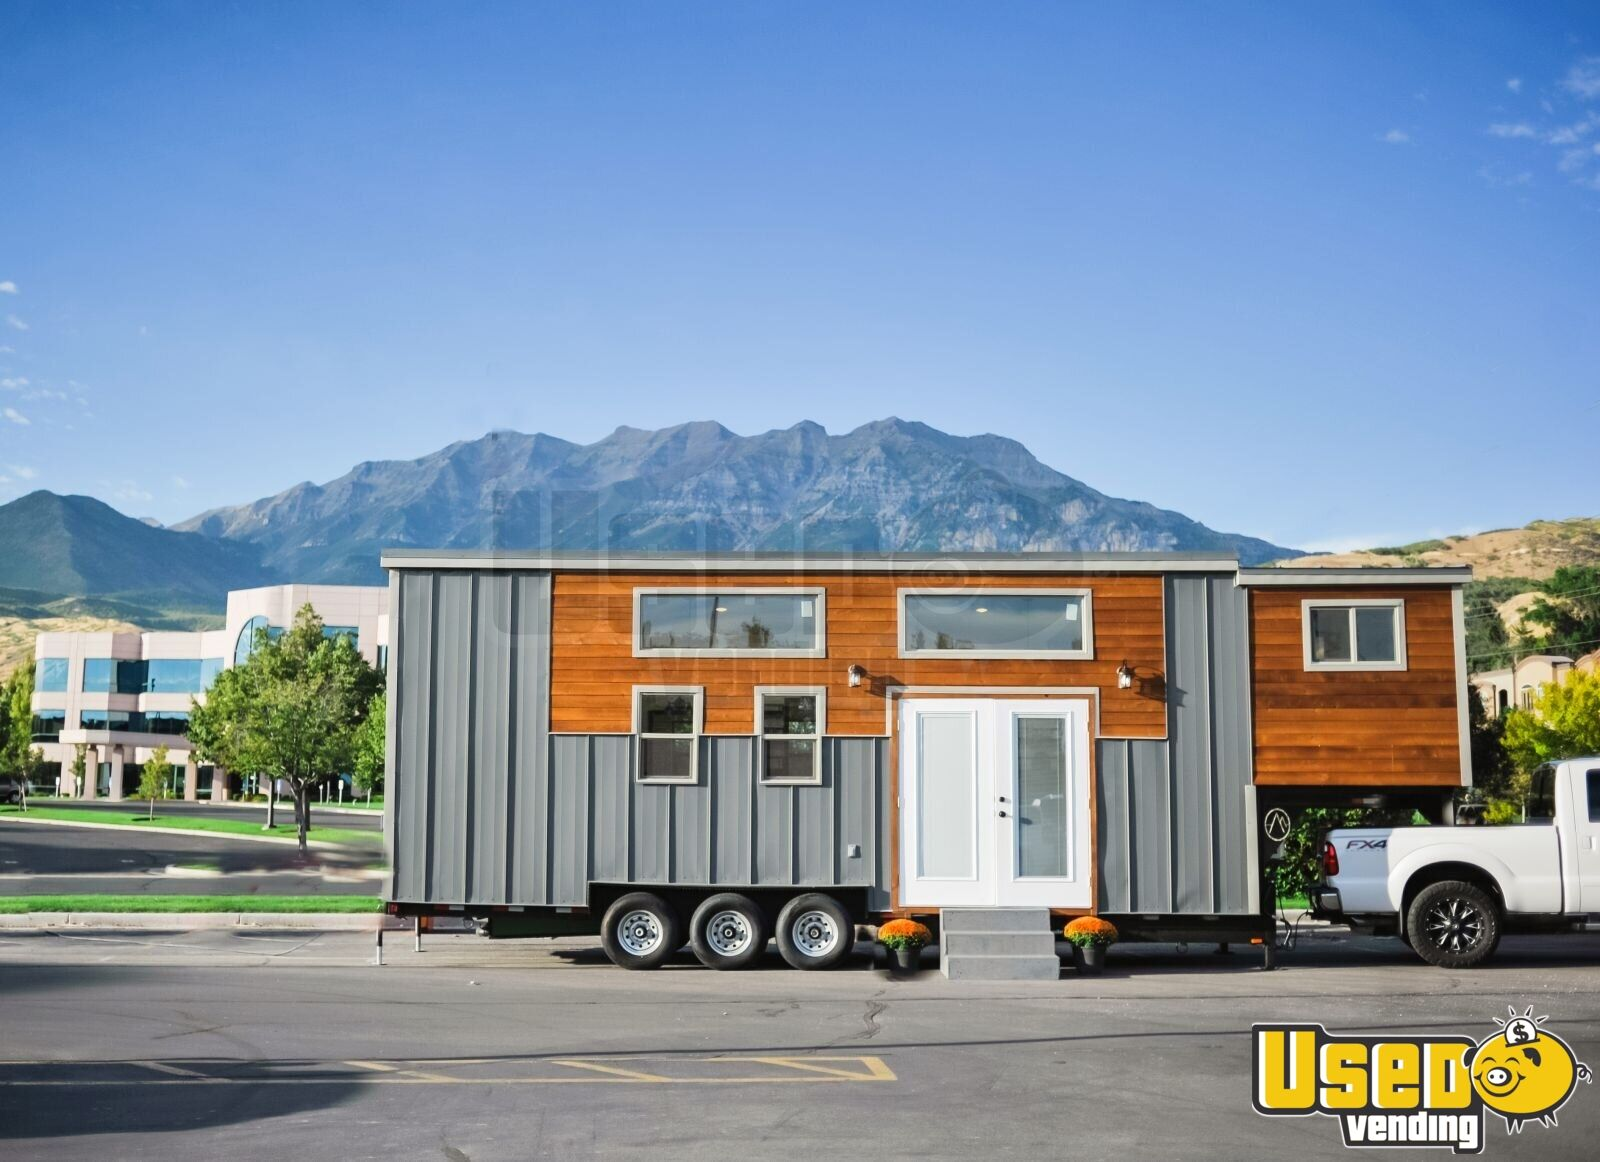 2018 Alpine Tiny Homes Other Mobile Business Air Conditioning Utah for Sale - 2